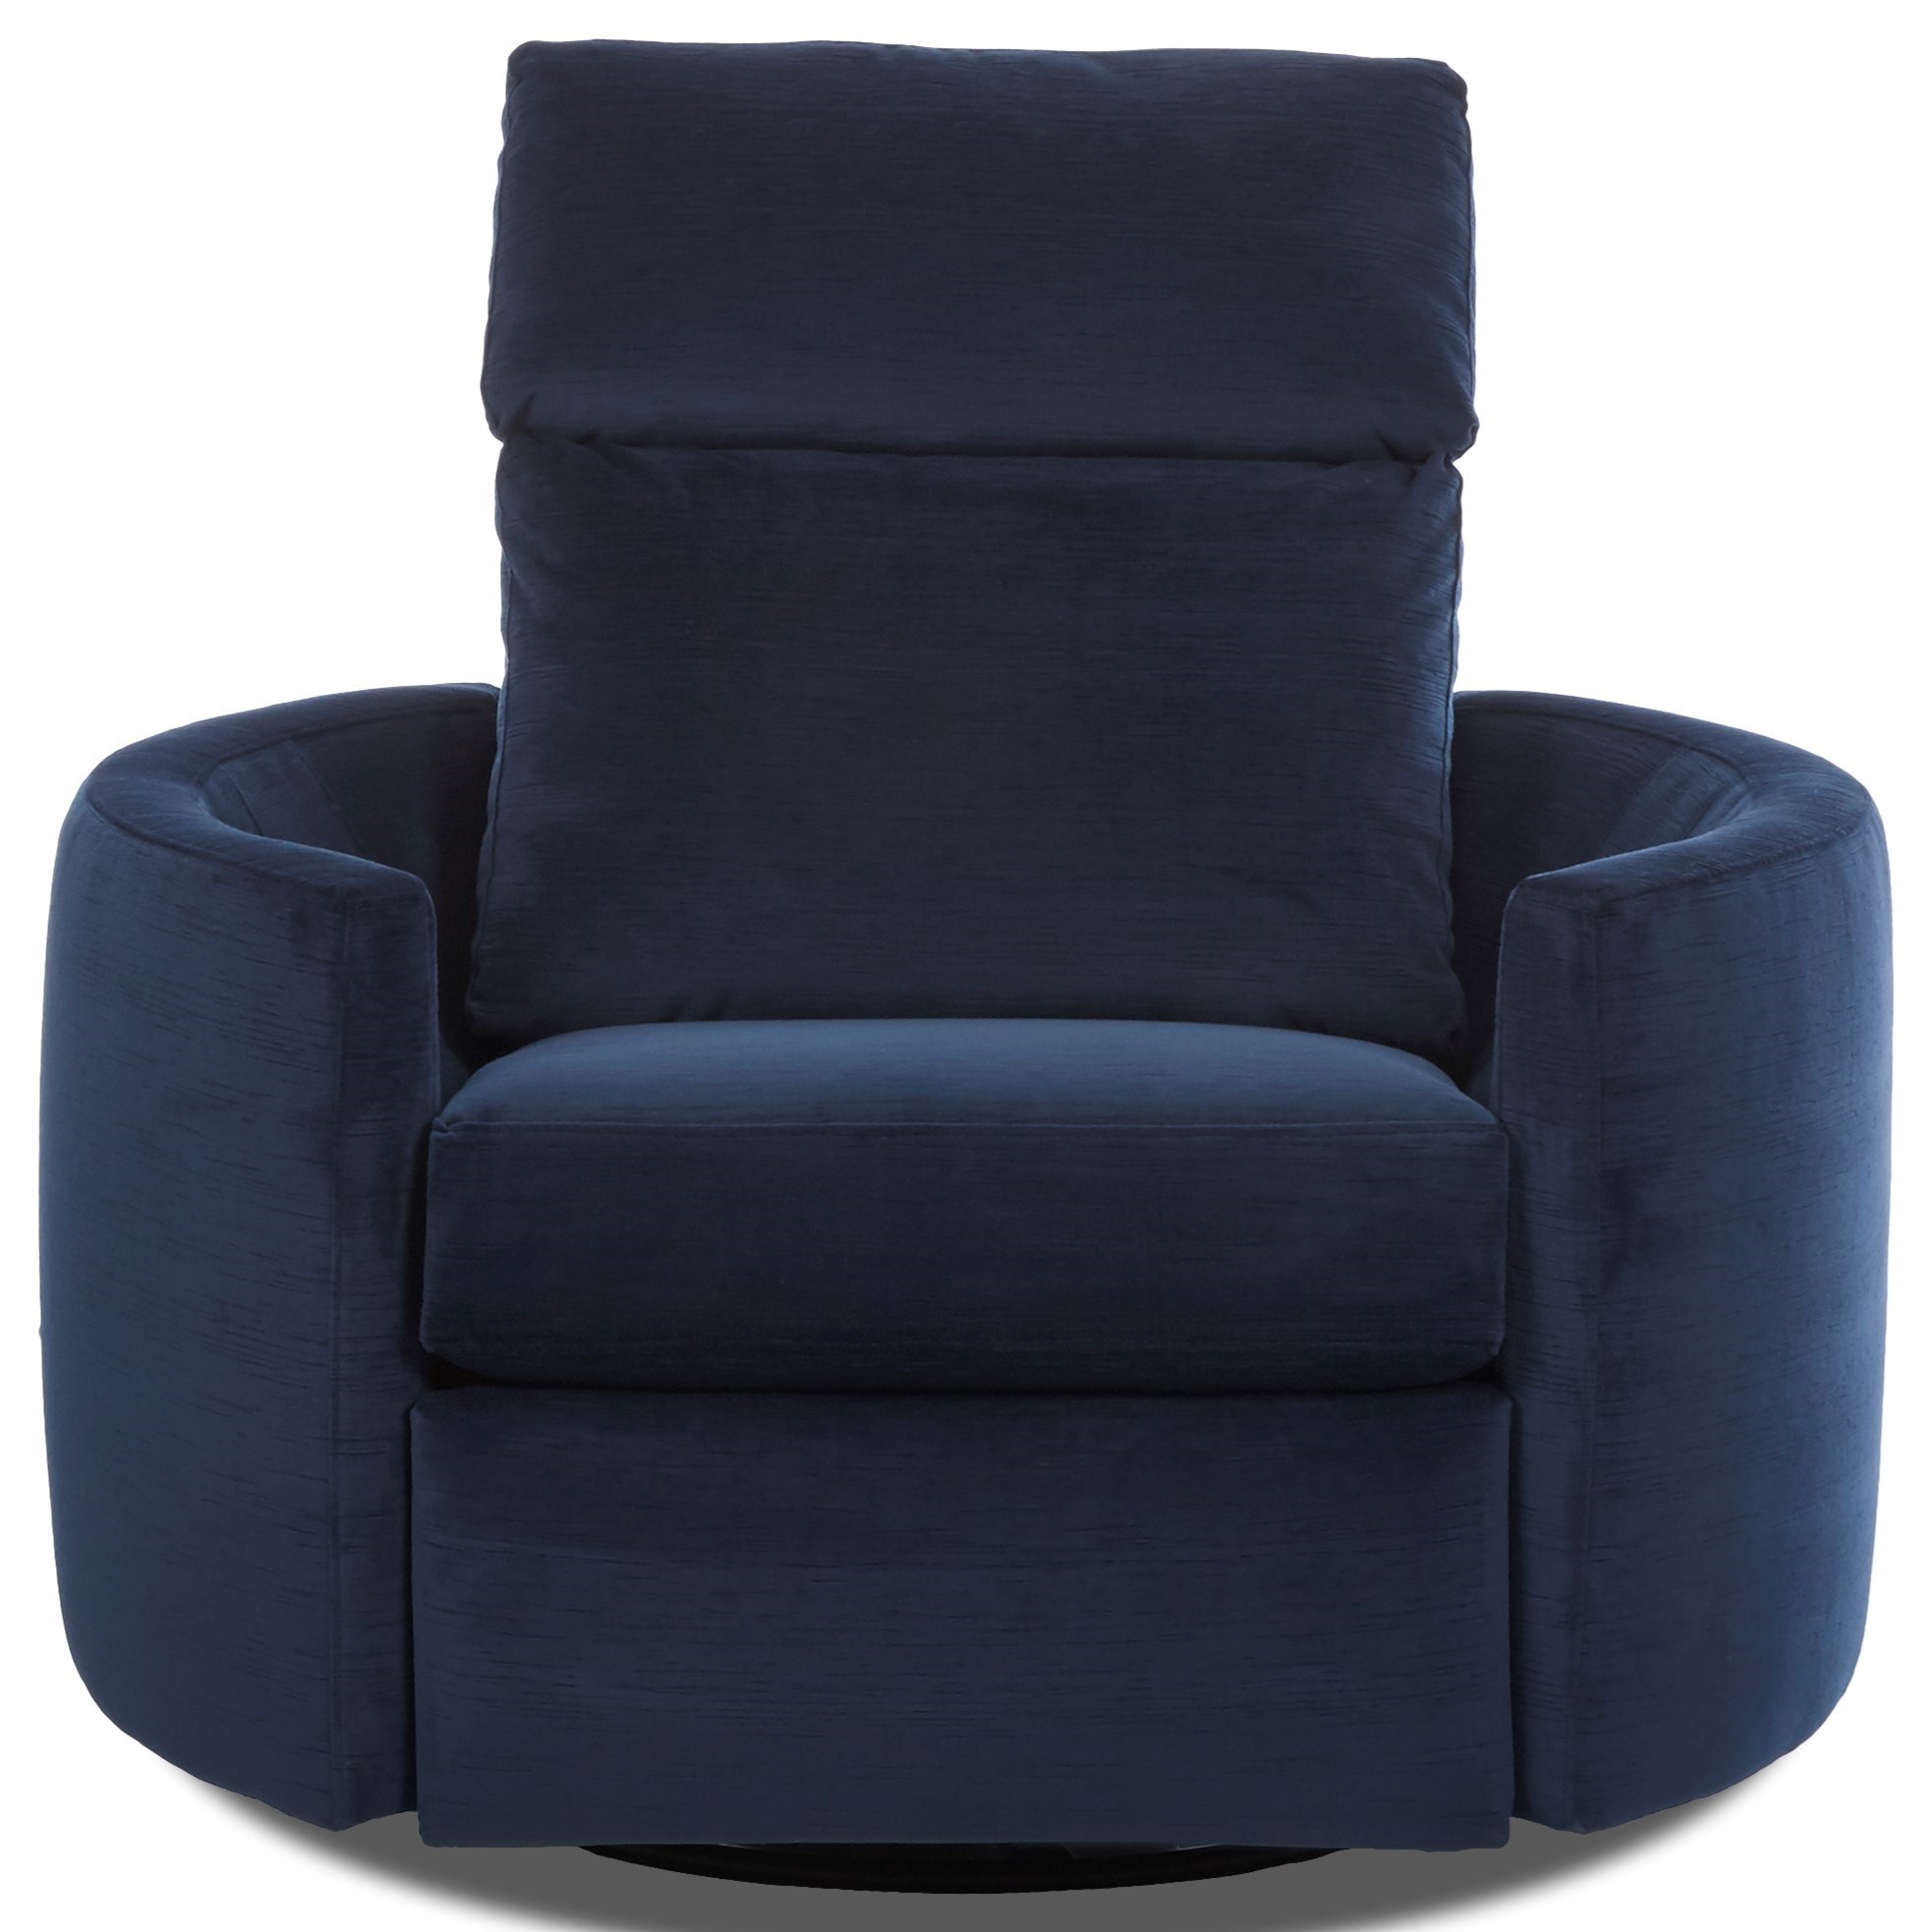 Gentil Klaussner Cosmo Contemporary Reclining Swivel Chair